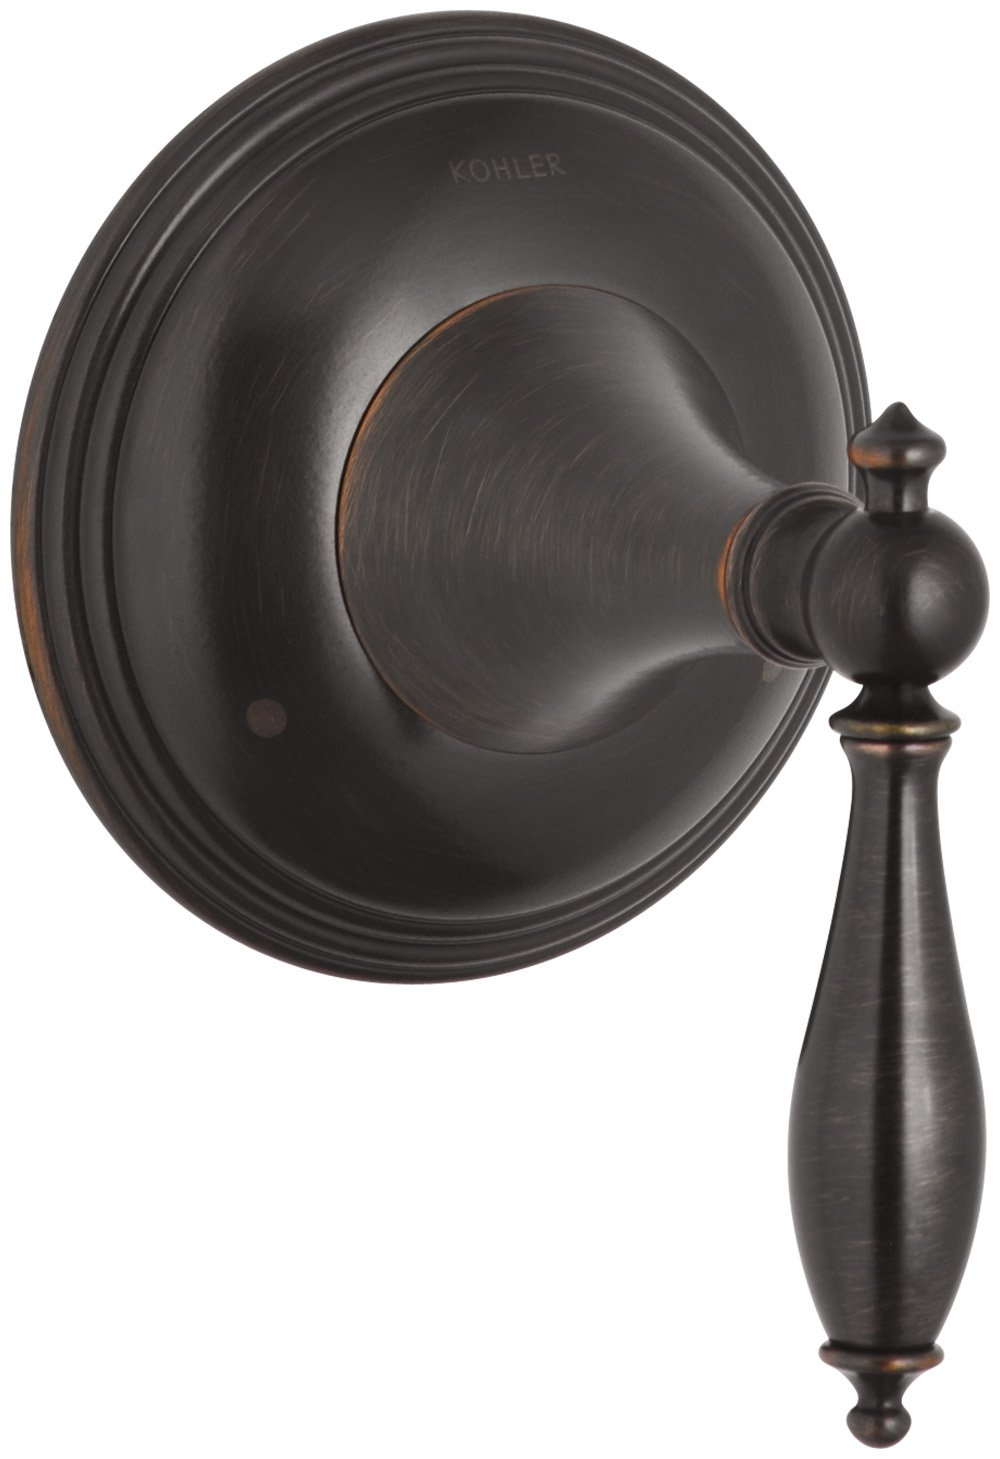 KOHLER K-T10304-4M-2BZ Finial Traditional Valve Trim with Lever Handle for Transfer Valve, Oil-Rubbed Bronze